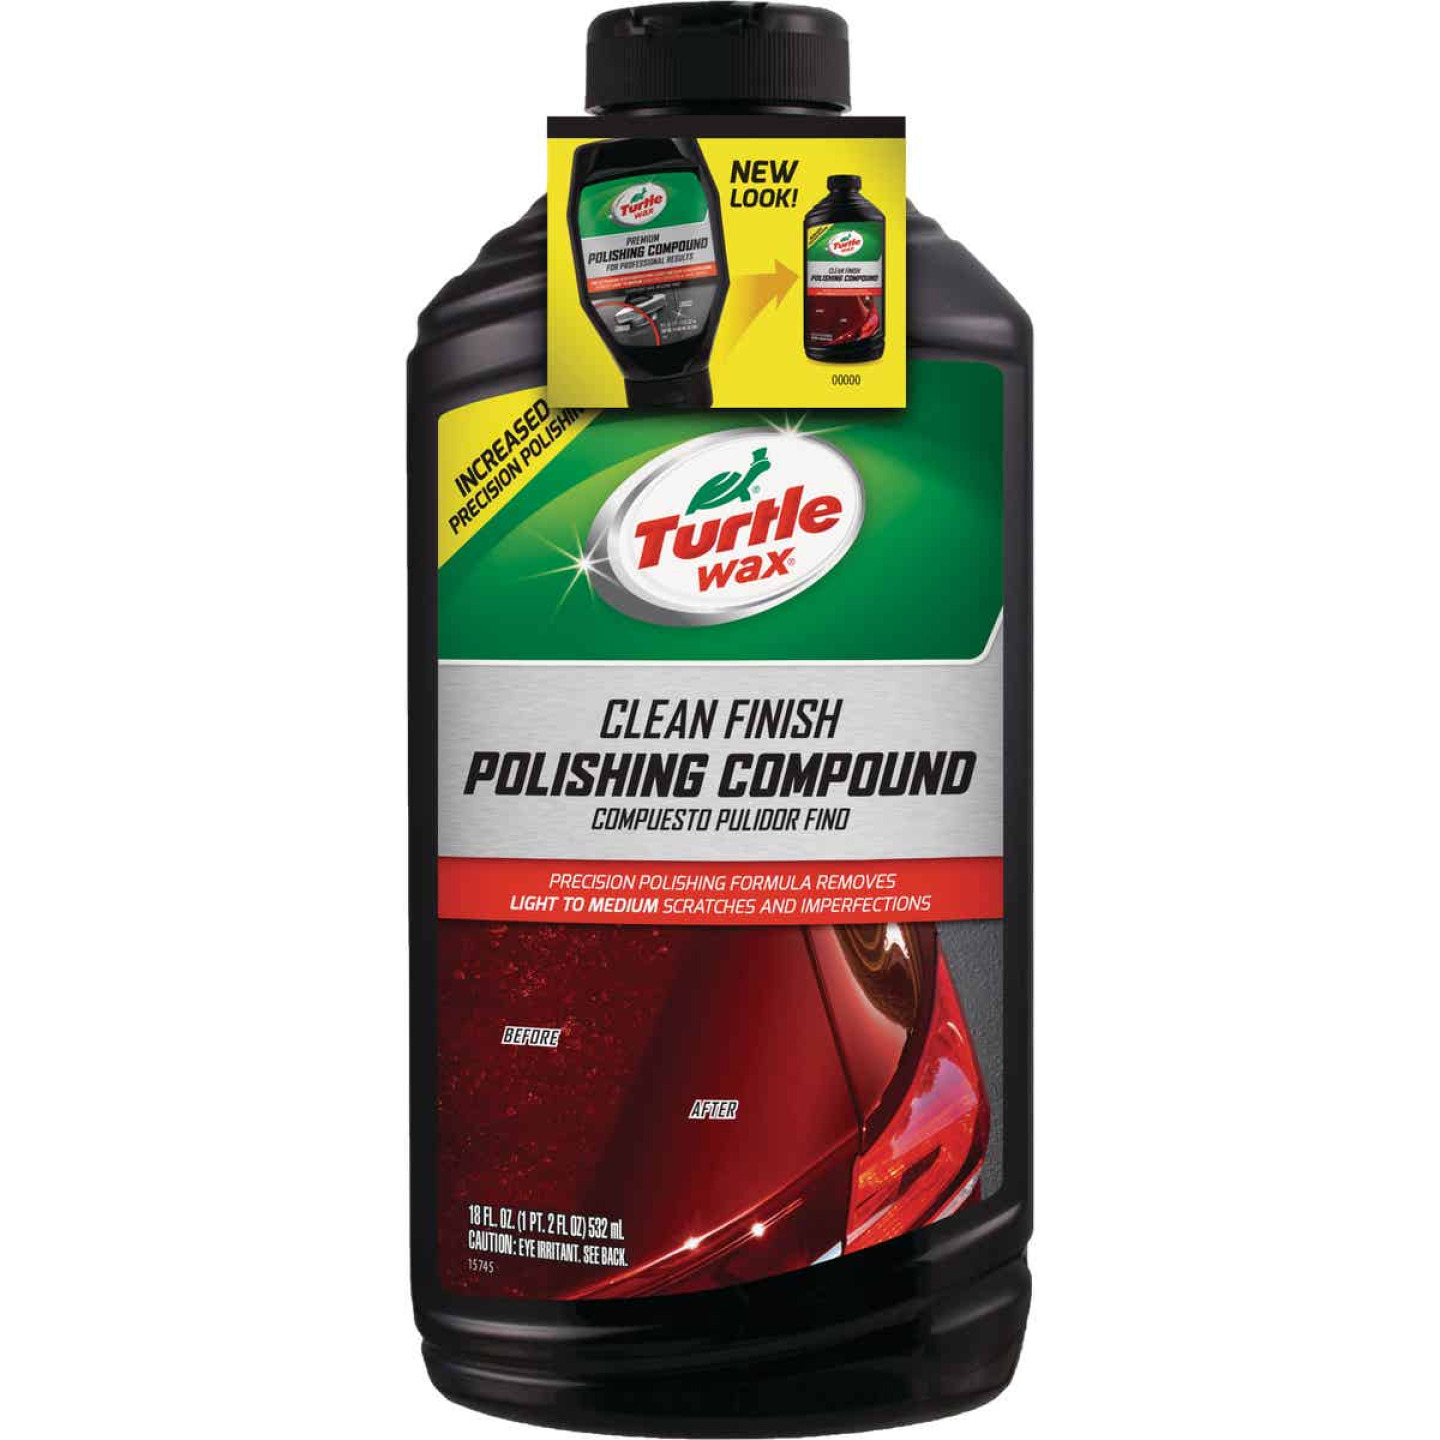 Turtle Wax RENEW Rx 18oz Liquid Polishing Compound Image 1